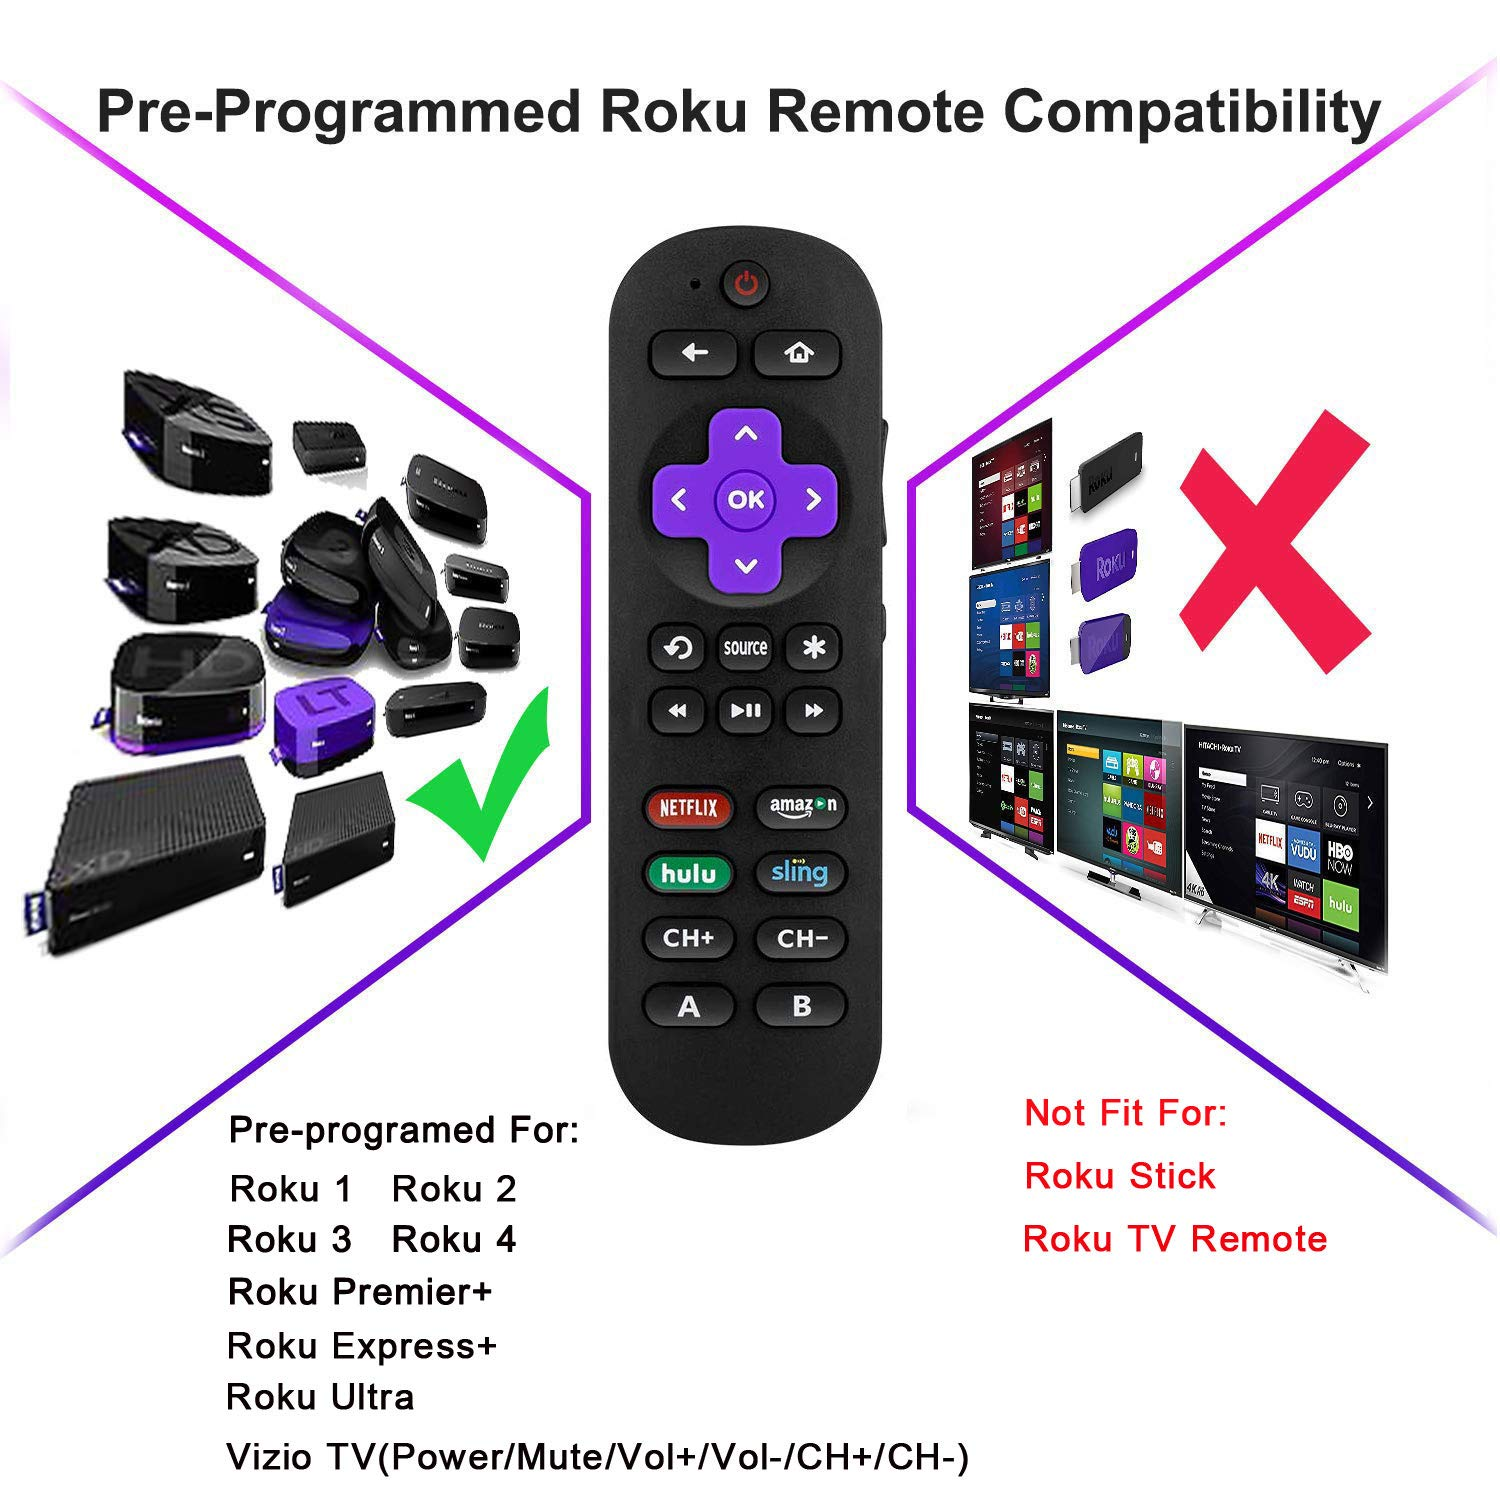 Universal Remote Control For Roku Player With 9 More Learning Keys to Control TV Soundbar Receiver All in One (Fit For Roku 1 2 3 4 Premier+ Express Ultra)【NOT FOR ROKU STICK & BUILT-IN ROKU TV】 by Hztprm (Image #2)